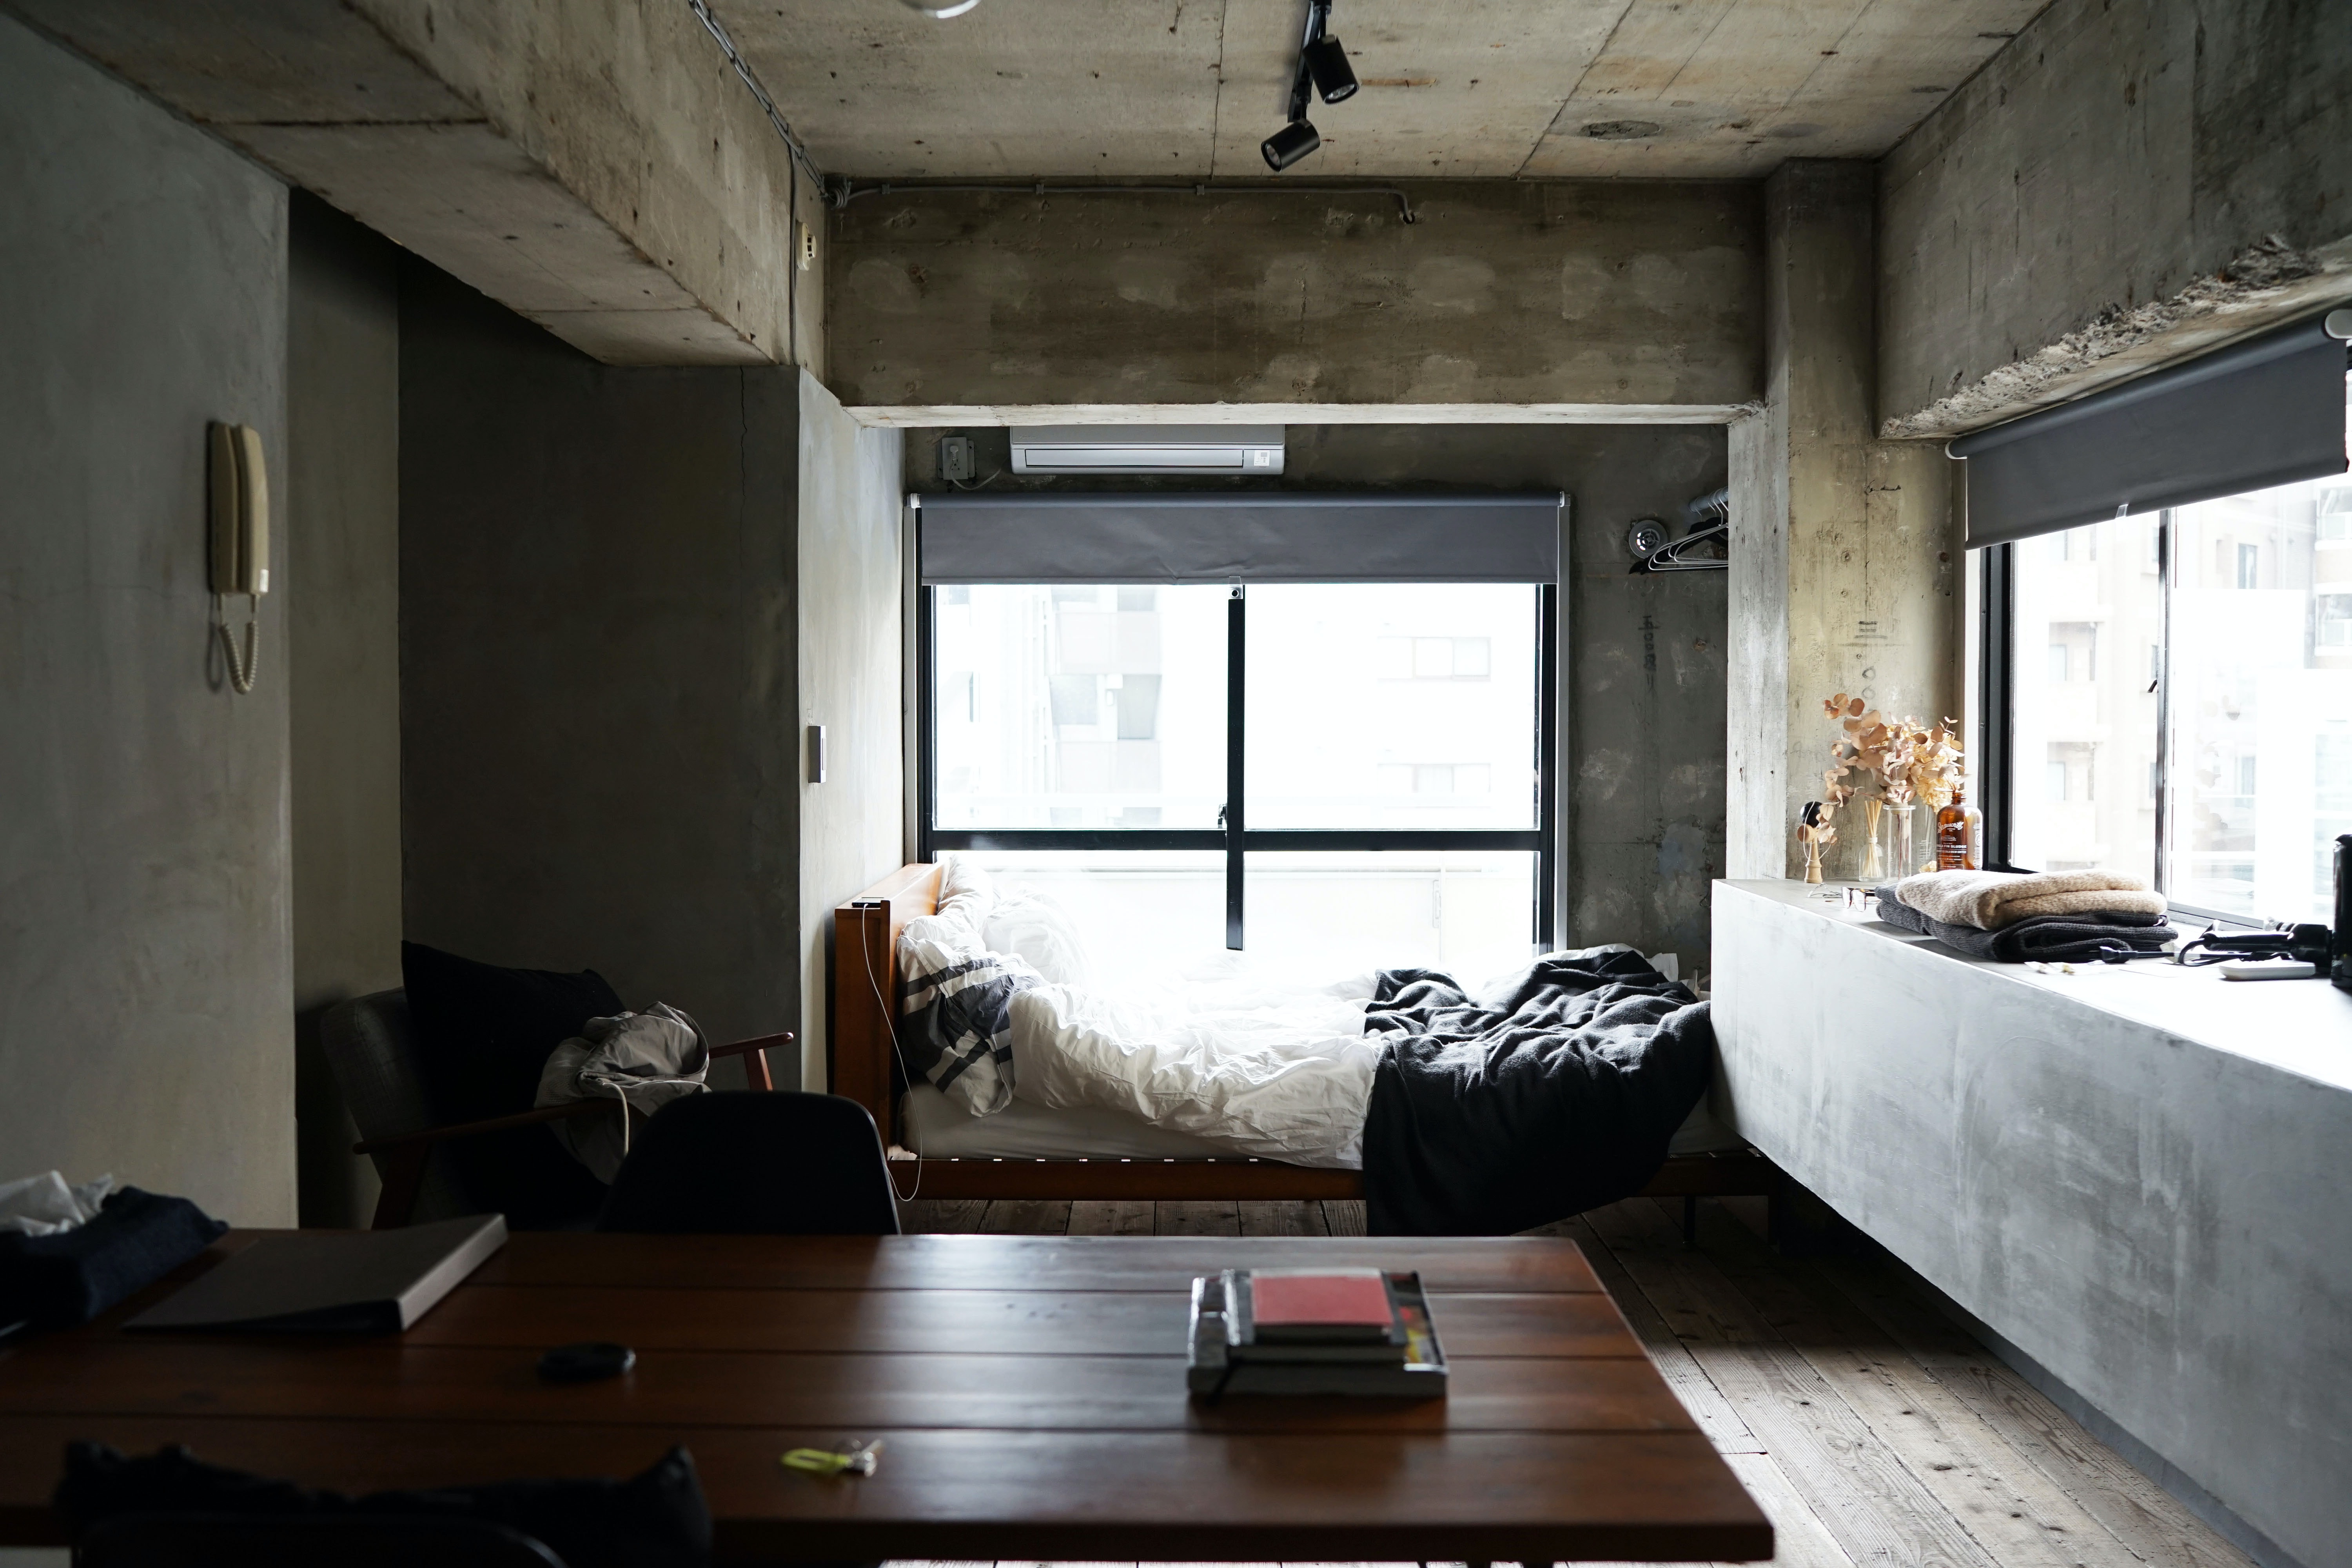 A small bedroom with a bed, table, chair, phone, and windows in Shibuya